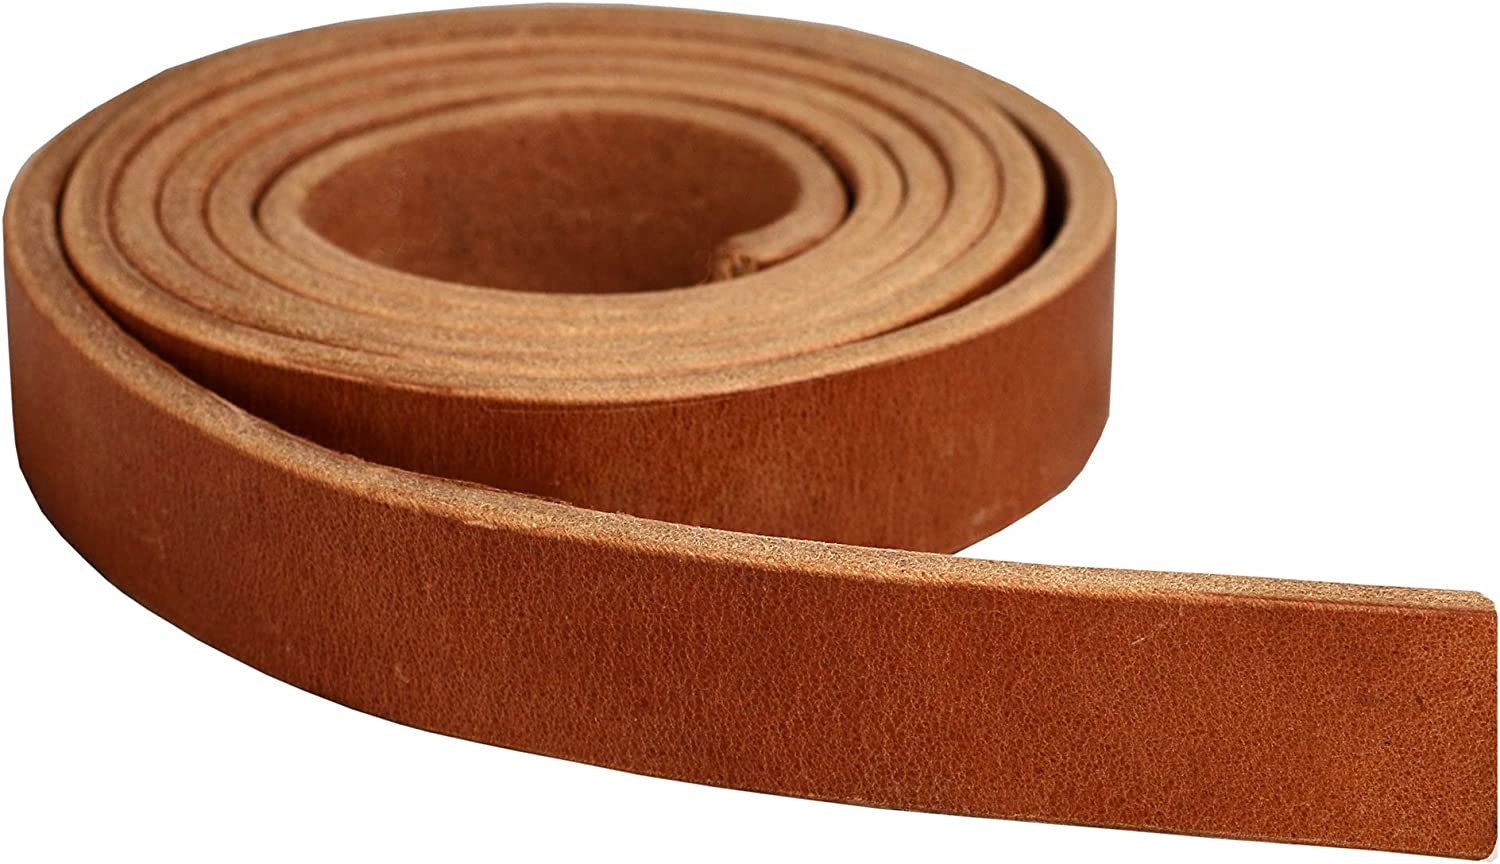 13//64 or 5.2 MM Thickness 13 Ounce Weight Great for Tack Repair Premium Hermann Oak Harness Leather Blank Strap Fully Finished /& Leveled Natural Russet Color 2 x 84 100/% Leather Strip